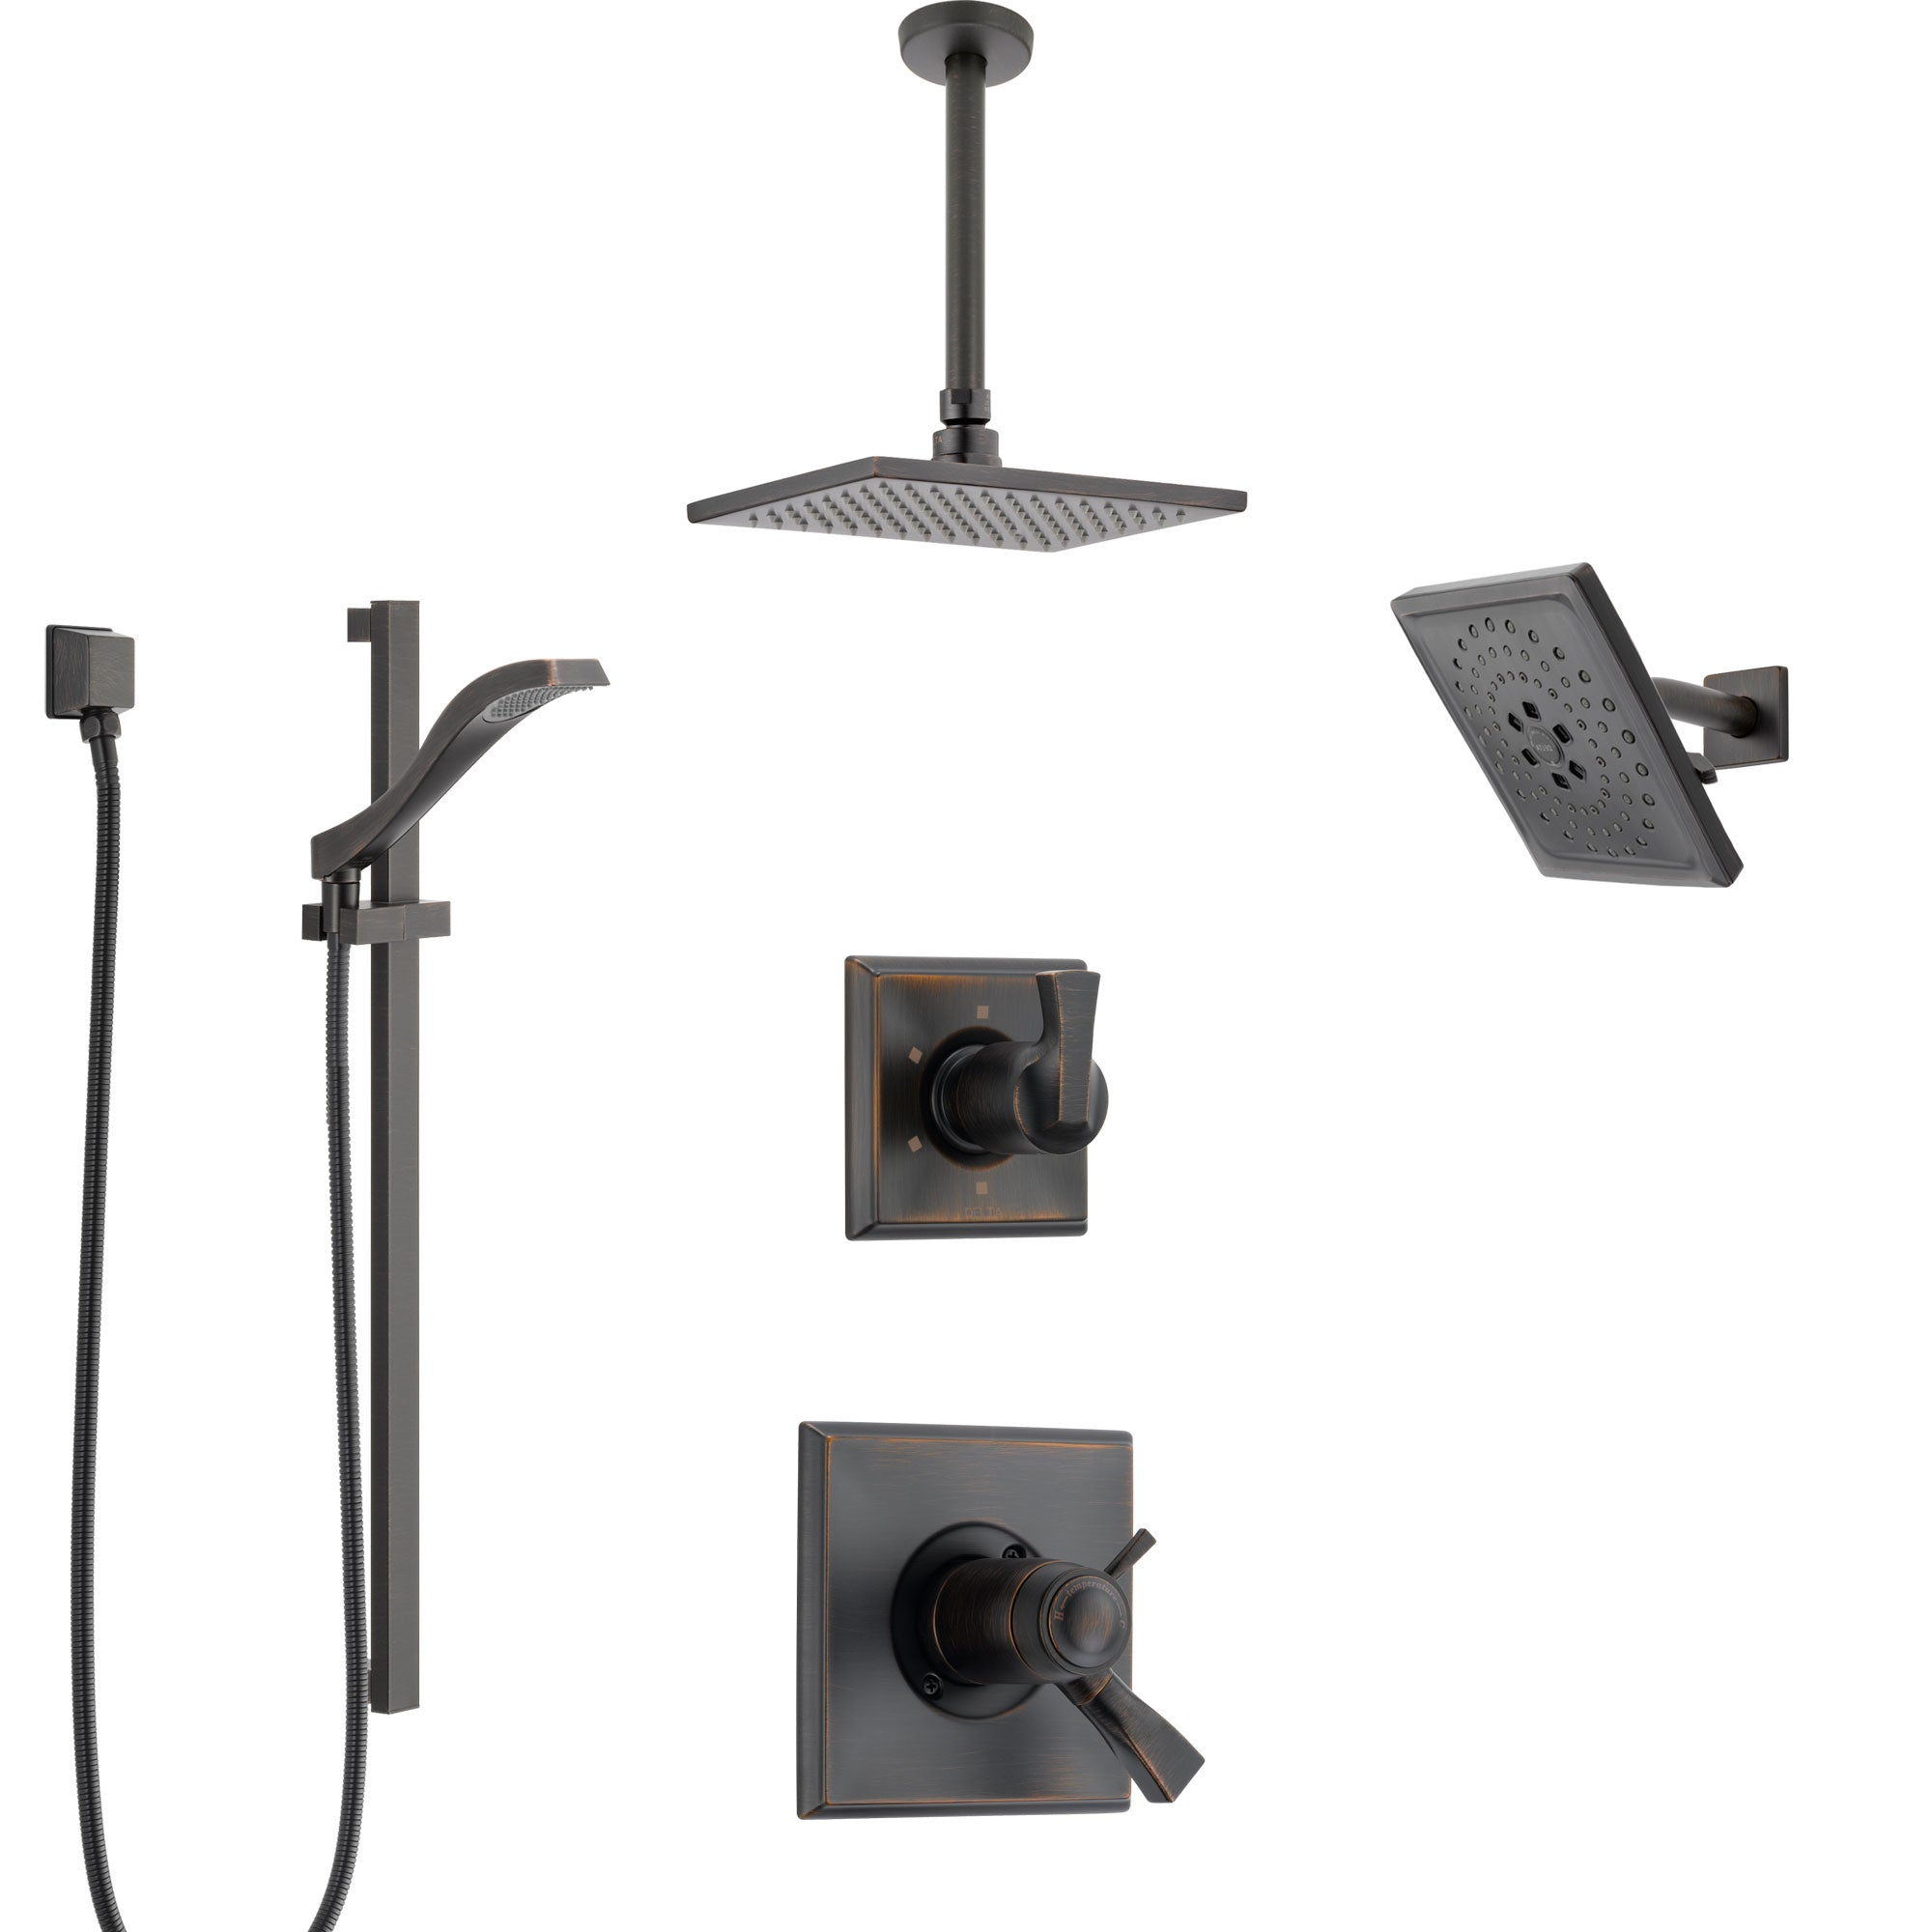 Delta Dryden Venetian Bronze Shower System with Dual Thermostatic Control, Diverter, Showerhead, Ceiling Mount Showerhead, and Hand Shower SS17T512RB6